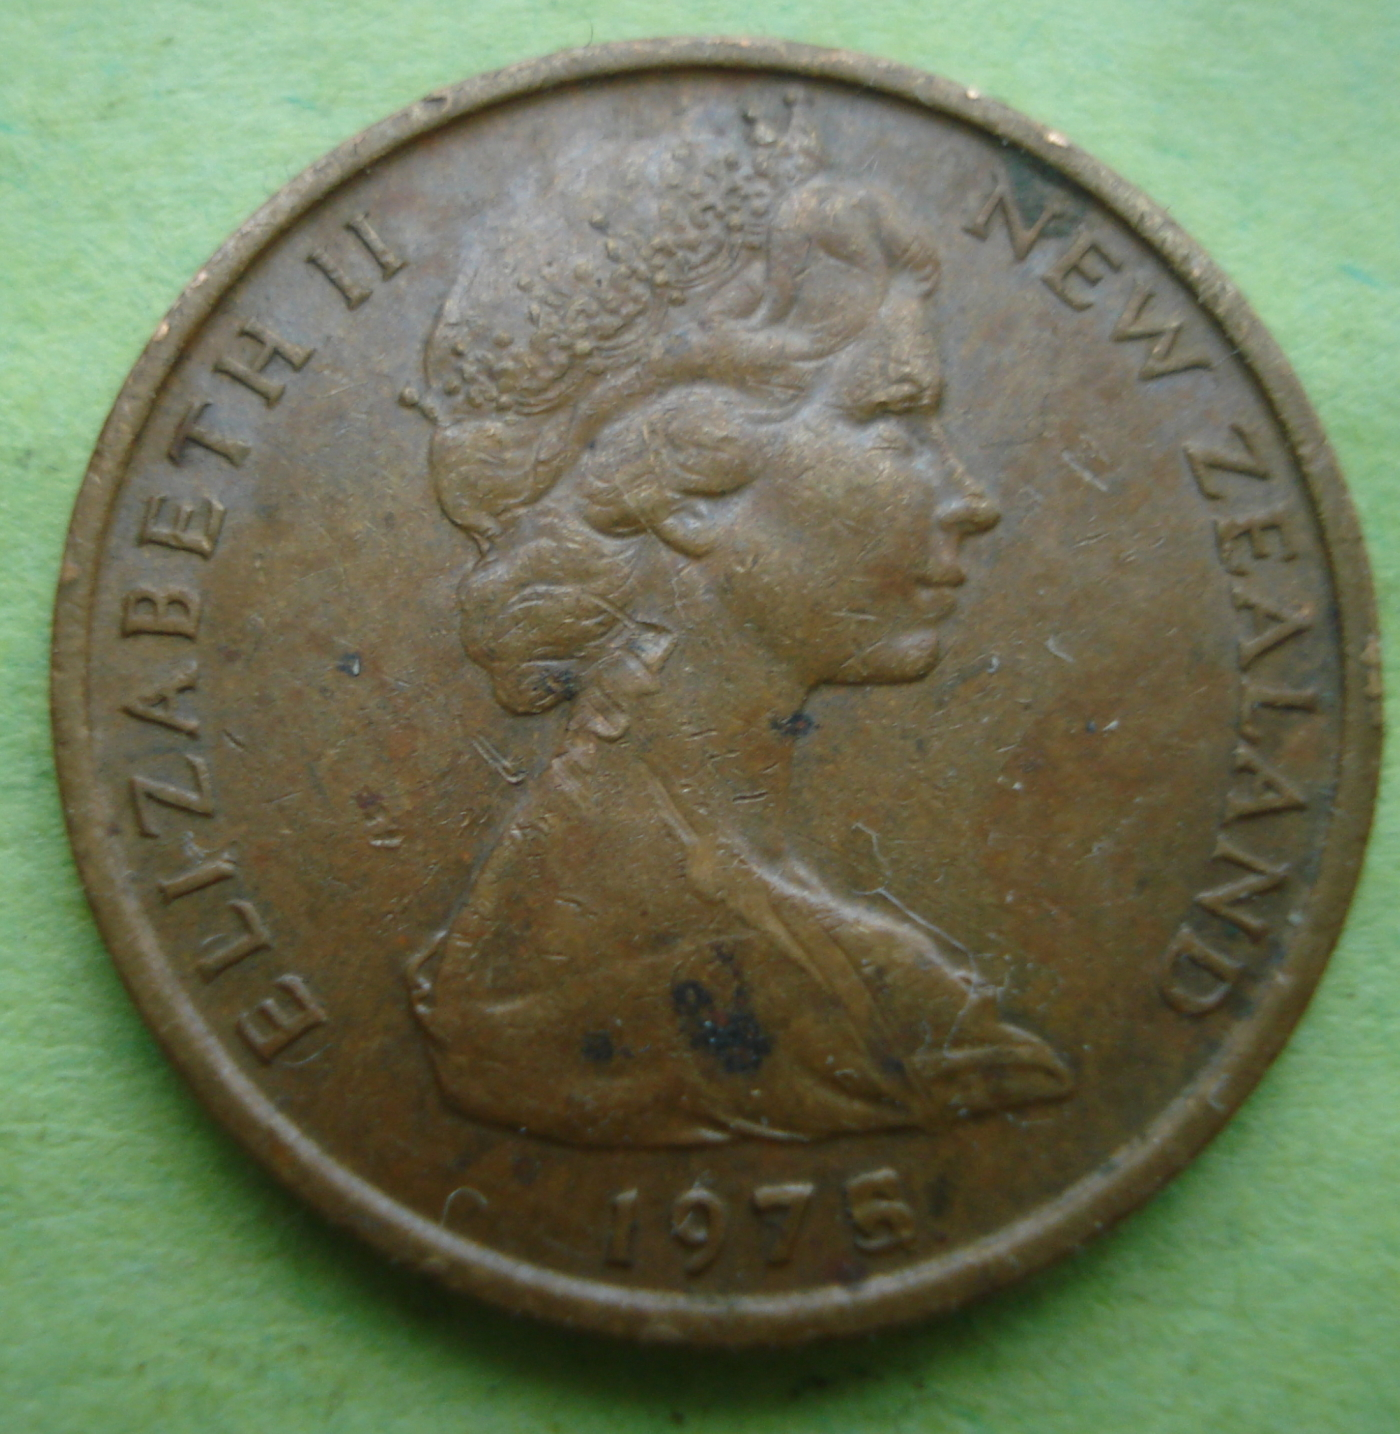 1975 new zealand 50 cent coin